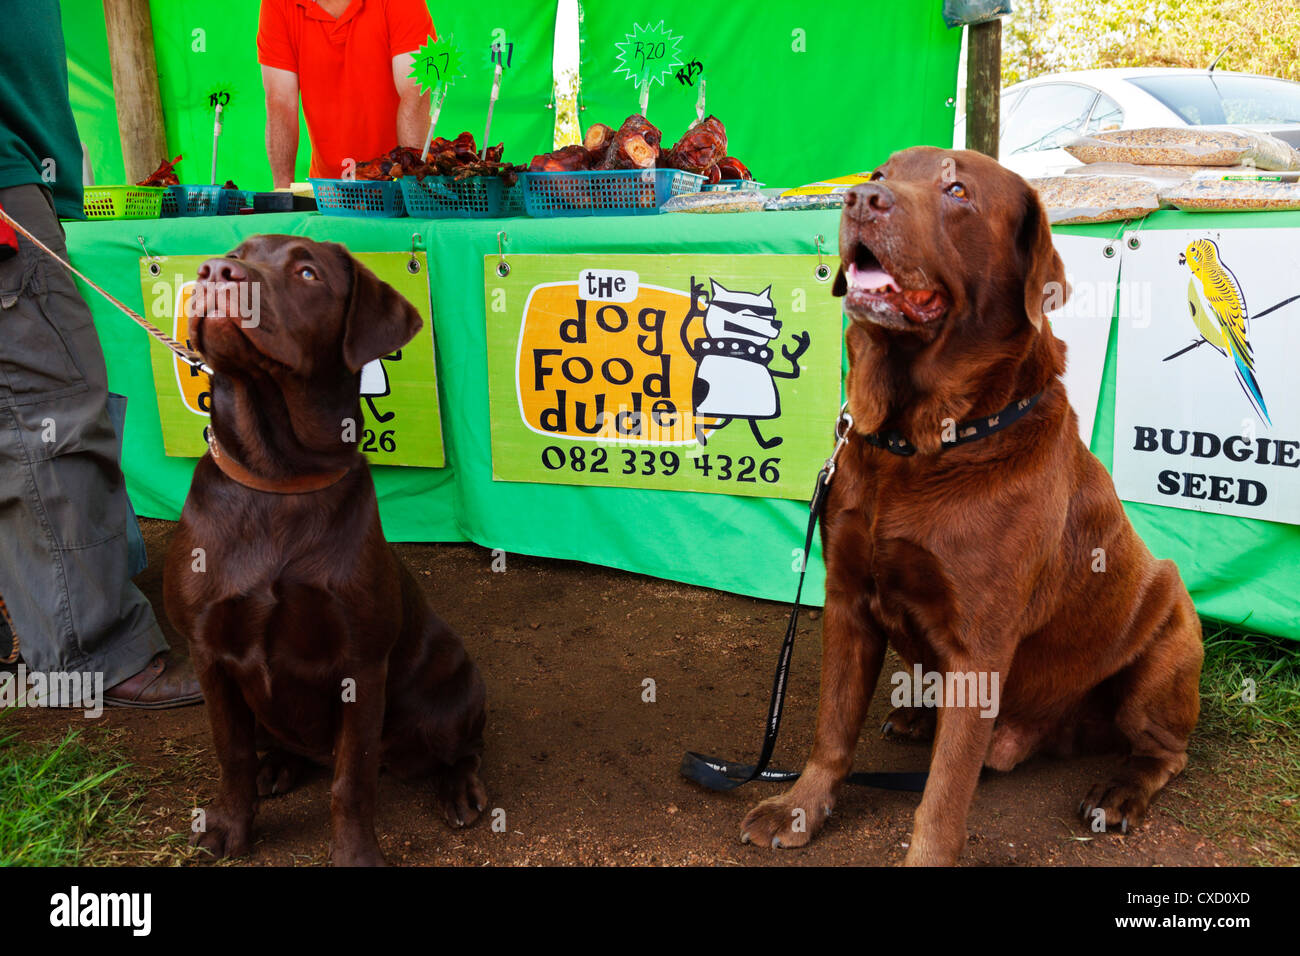 Farmers Market Dog Food Pack